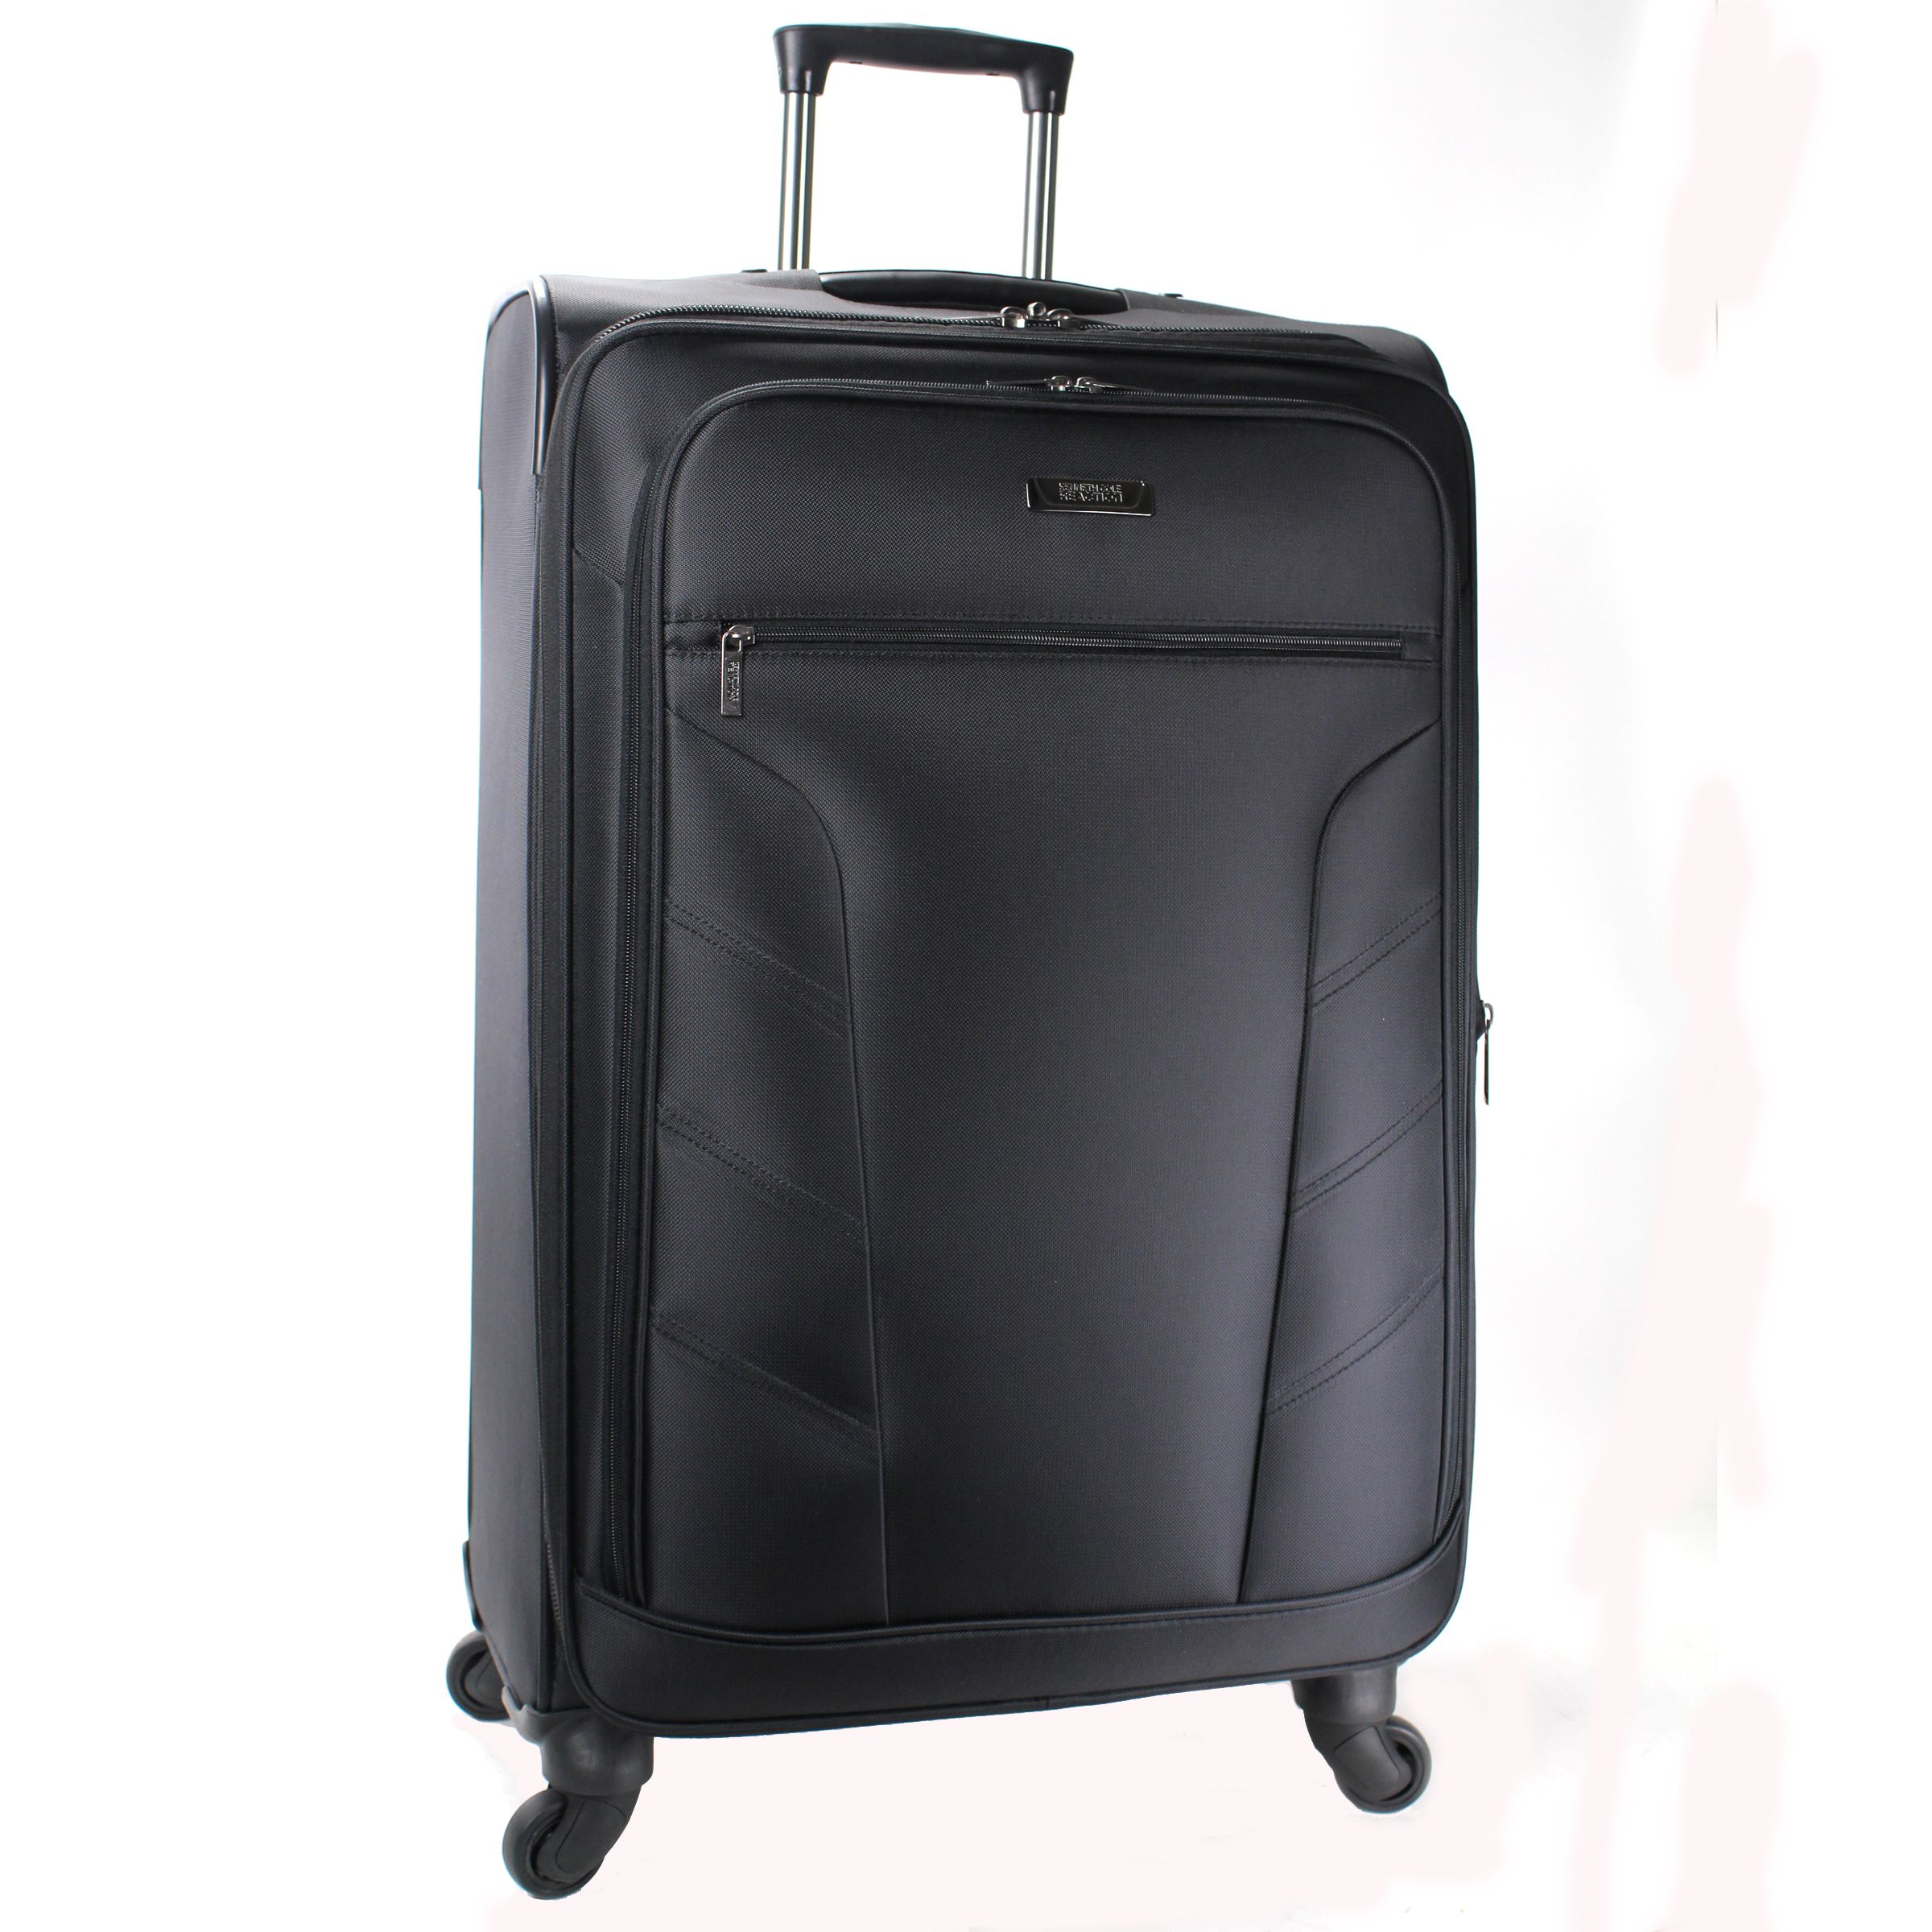 Flying high 4 wheel large suitcase